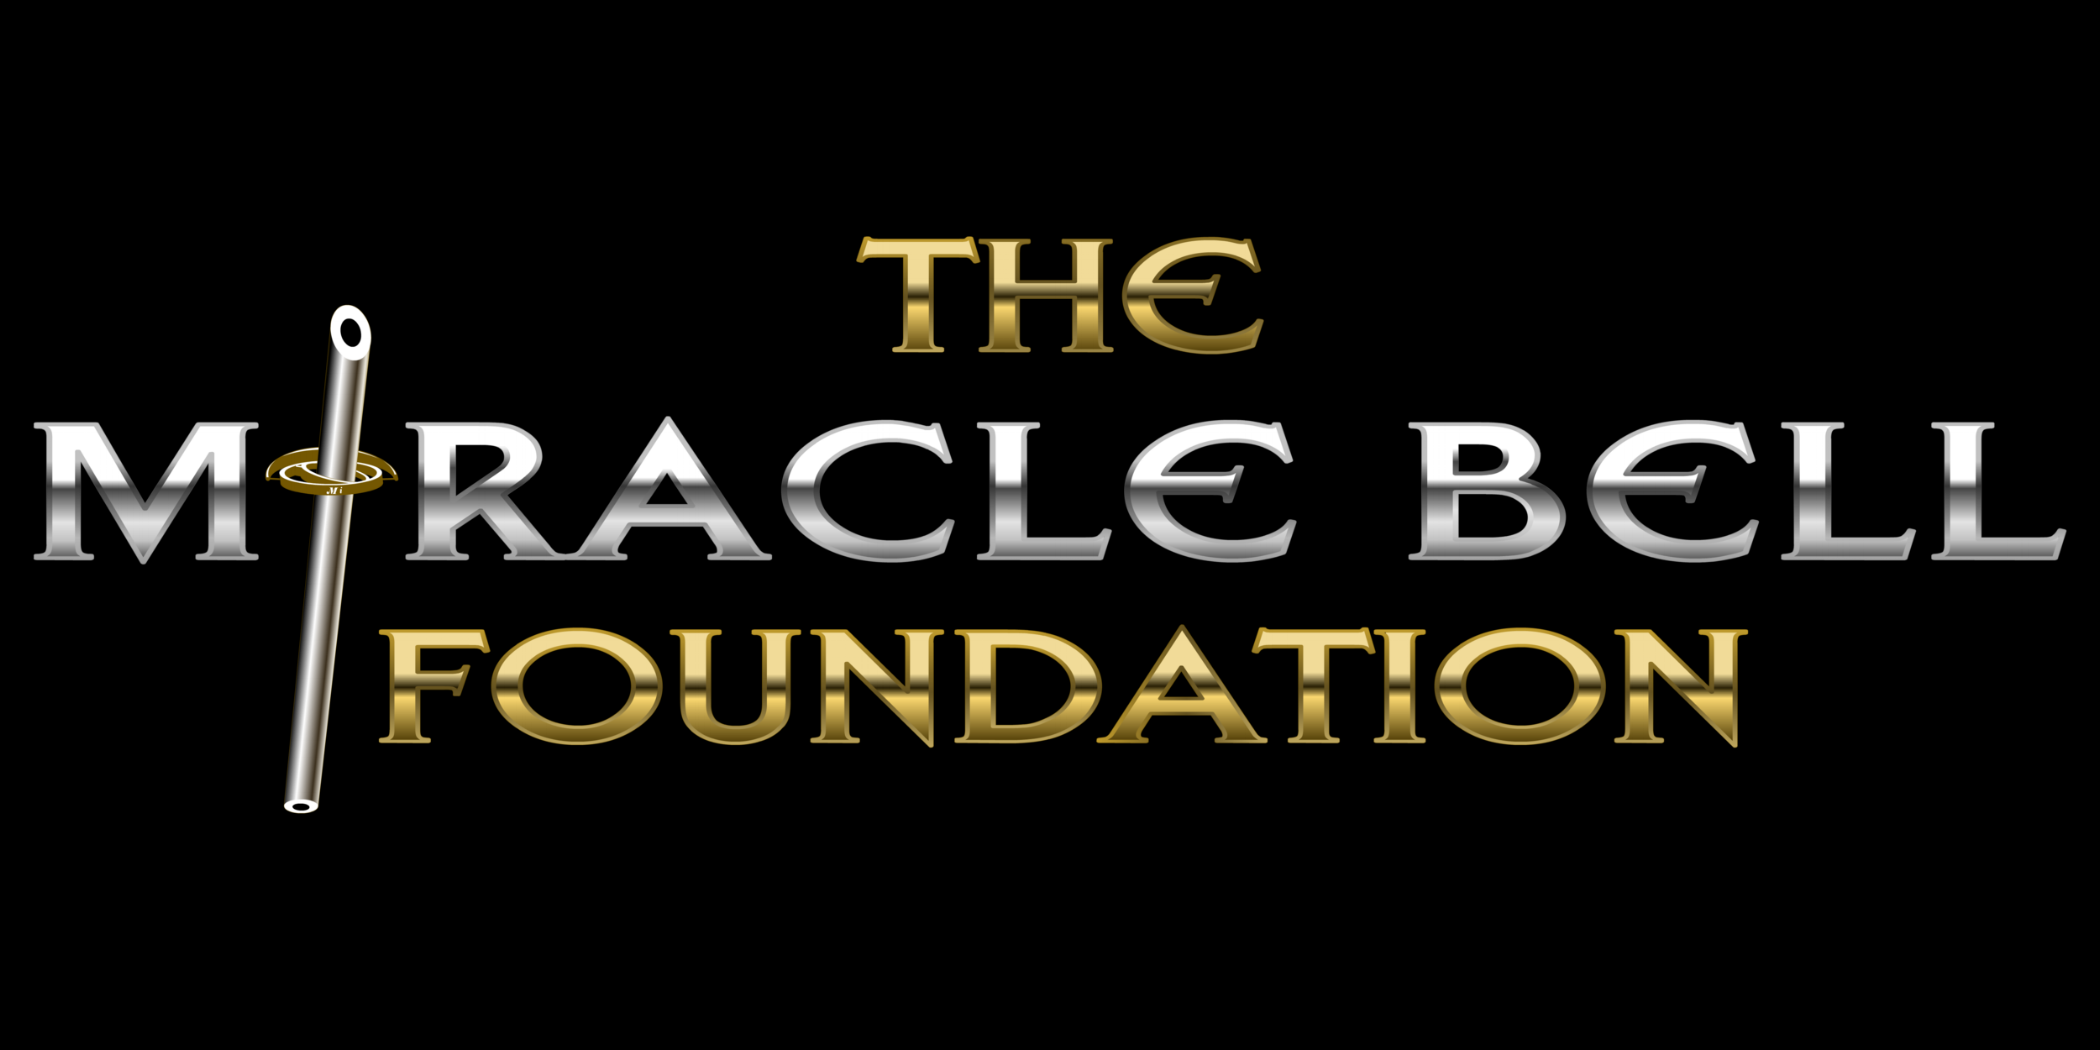 Miracle_Bell_Foundation_BG_transparent.png